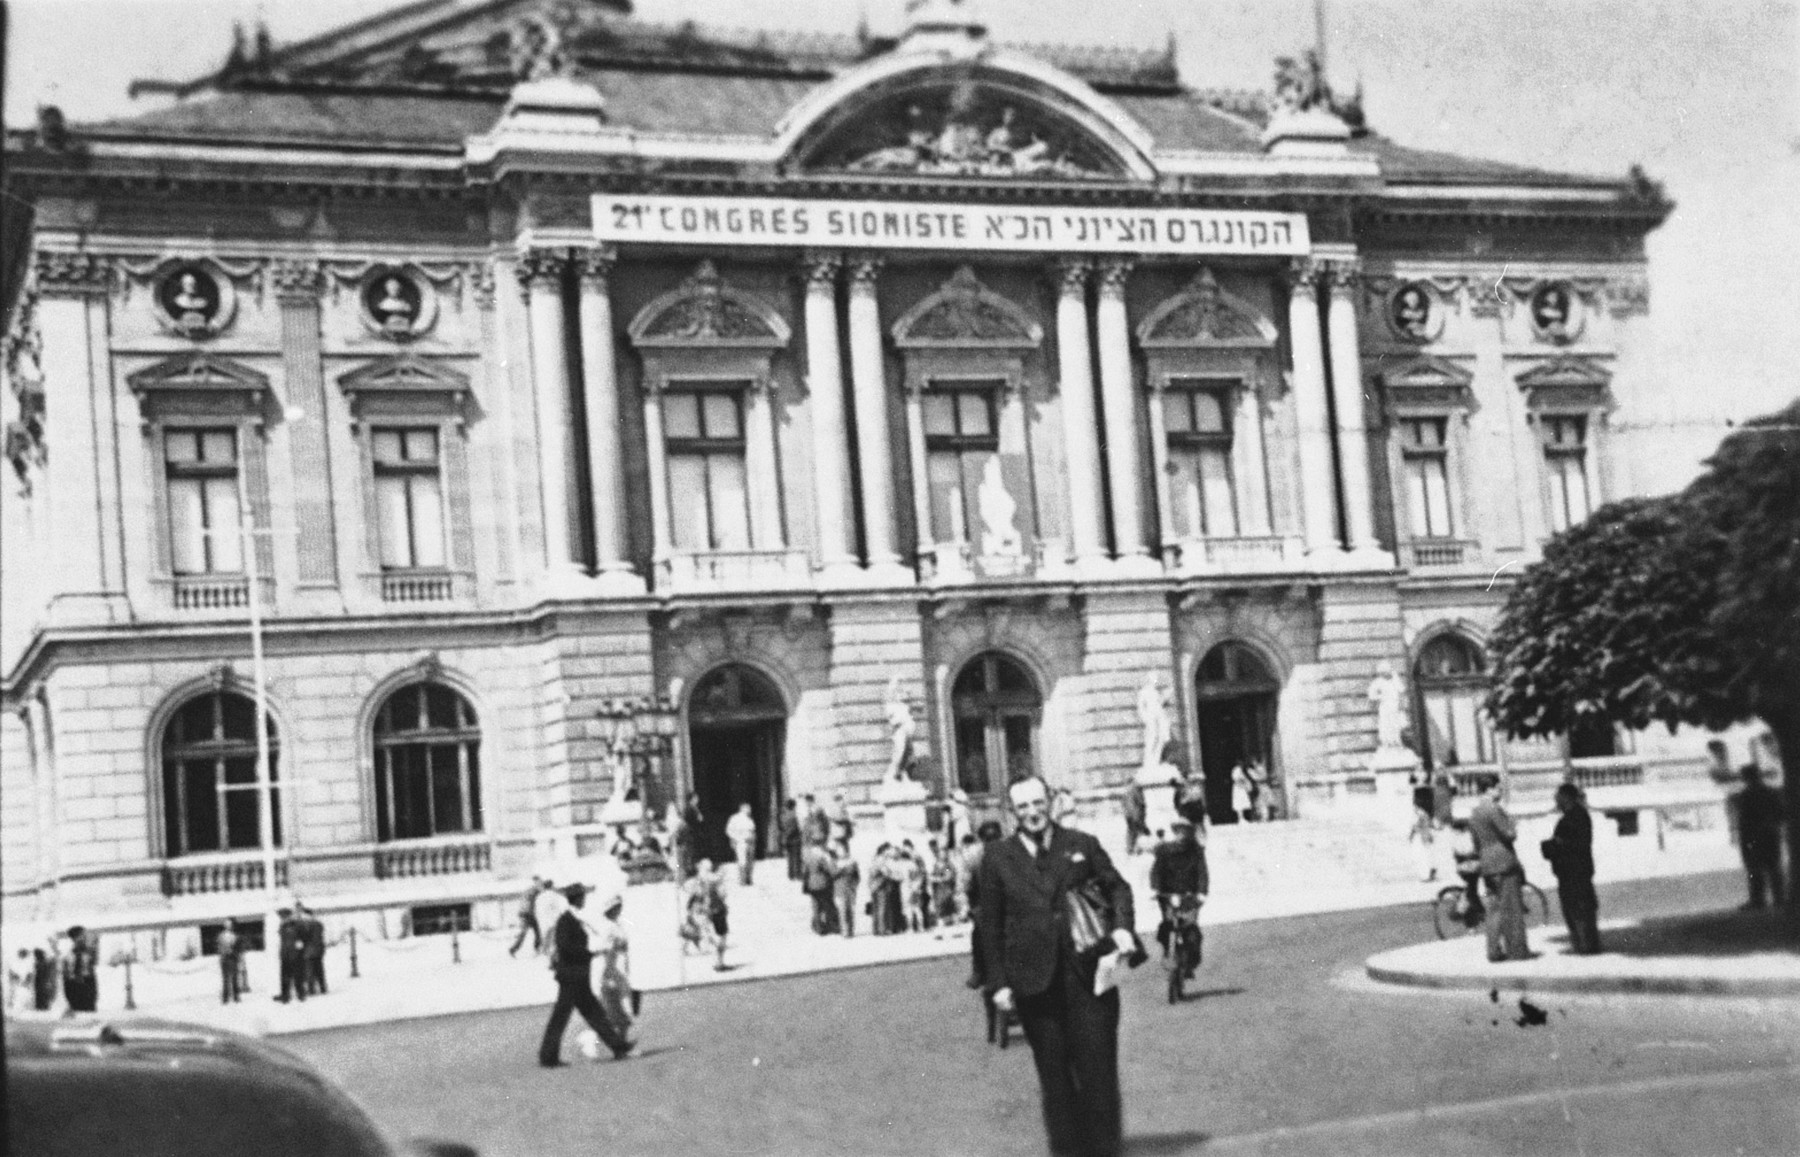 Isaac Margosis, editor of the Yiddishe Woch, stands outside the Grand Theatre in Geneva, the site of the 21st Zionist Congress.